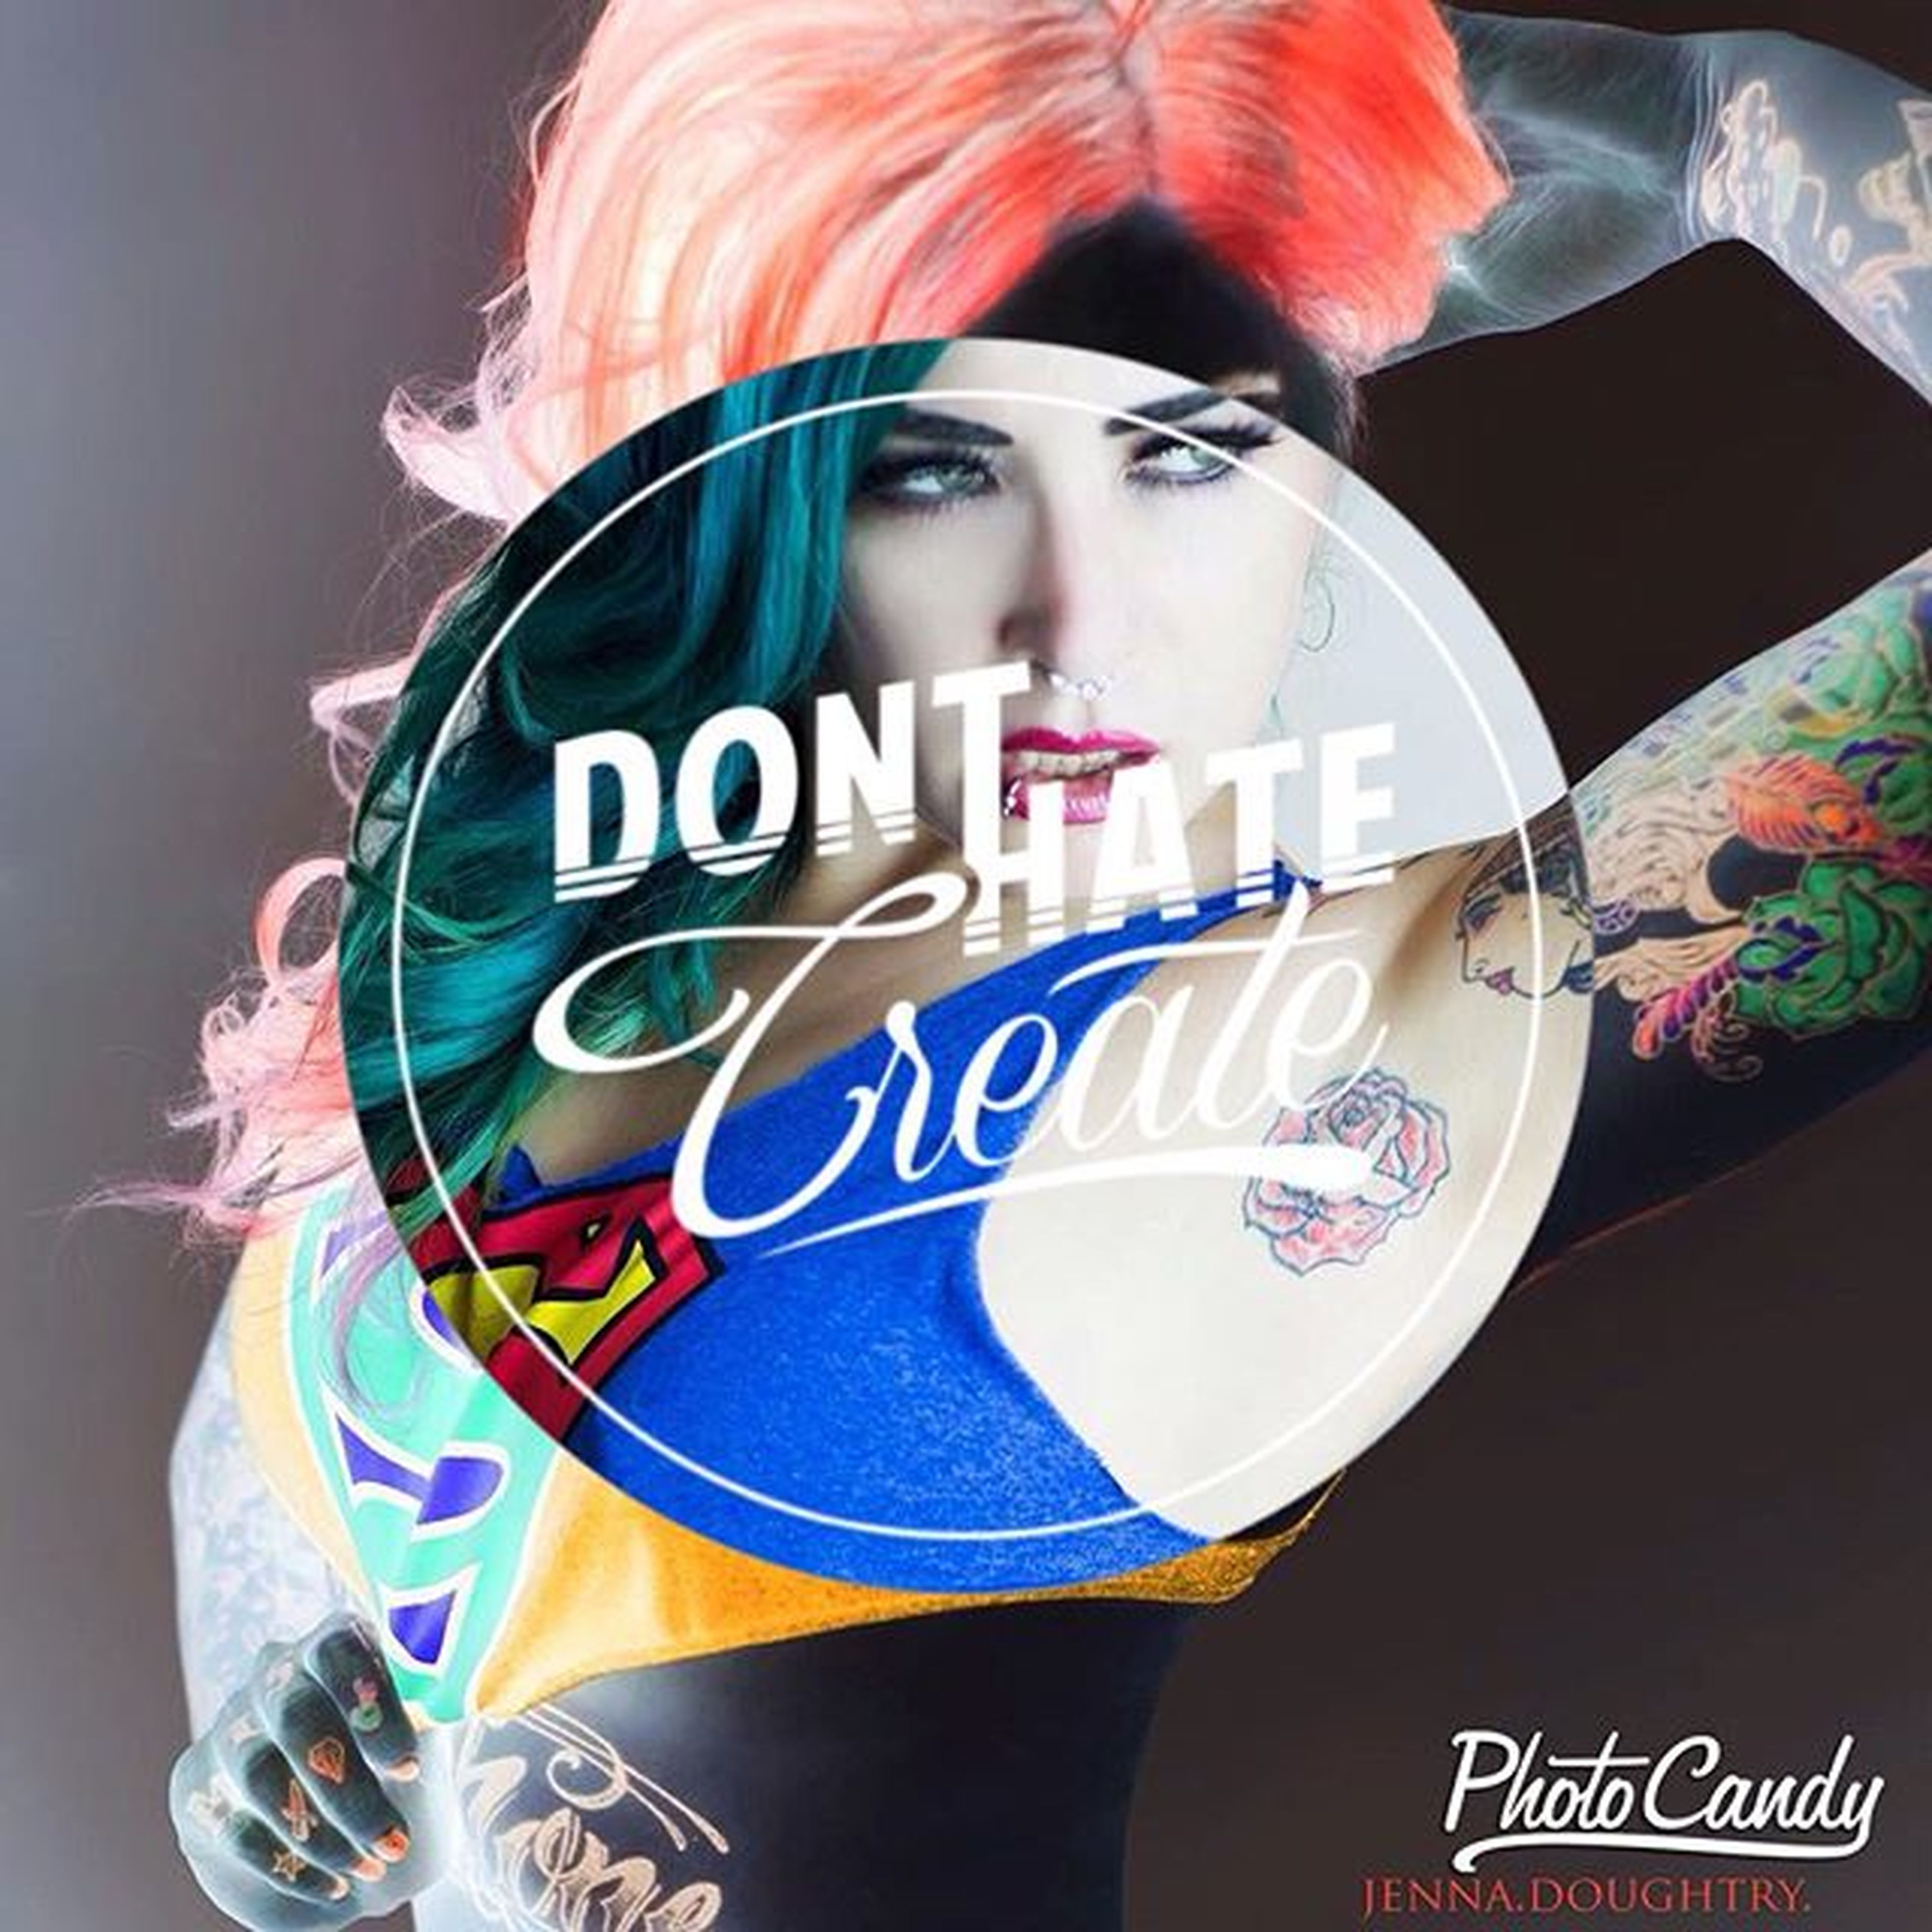 Myeditgivecredit Newedit JennaDoughtry JennaDoughtryPhotography Tattedmodels Tattoos Womanwithtattoos Altmodels Mischief